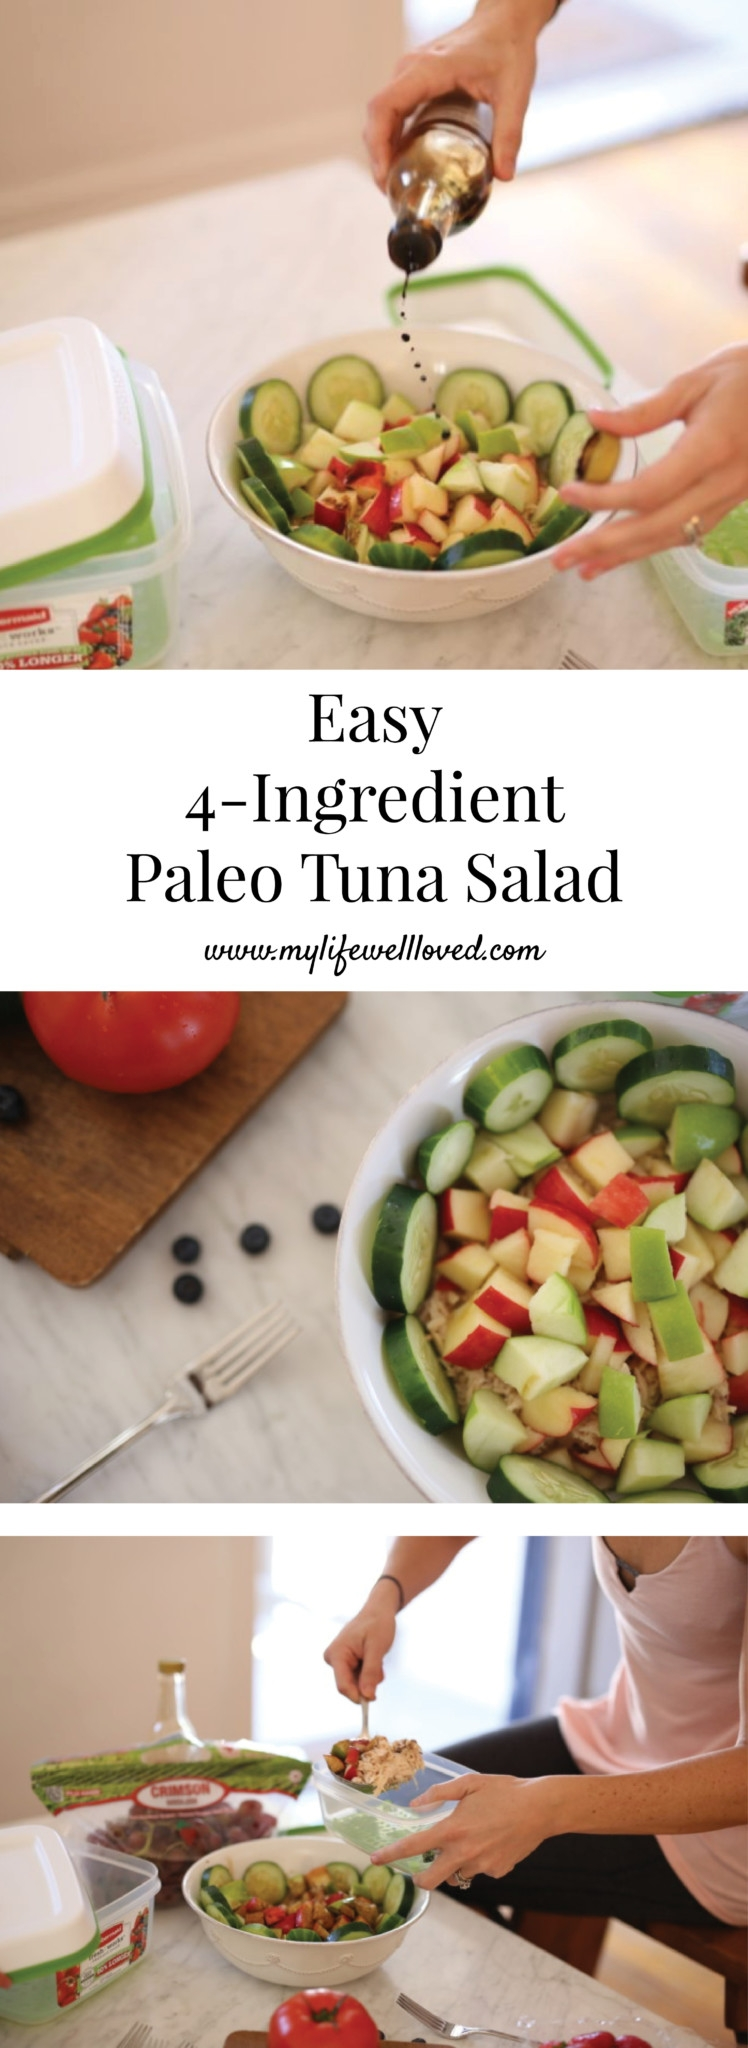 Easy 4-Ingredient Paleo Tuna Salad by Alabama Blogger Heather Brown // heathy recipes // weight loss meals // clean eating